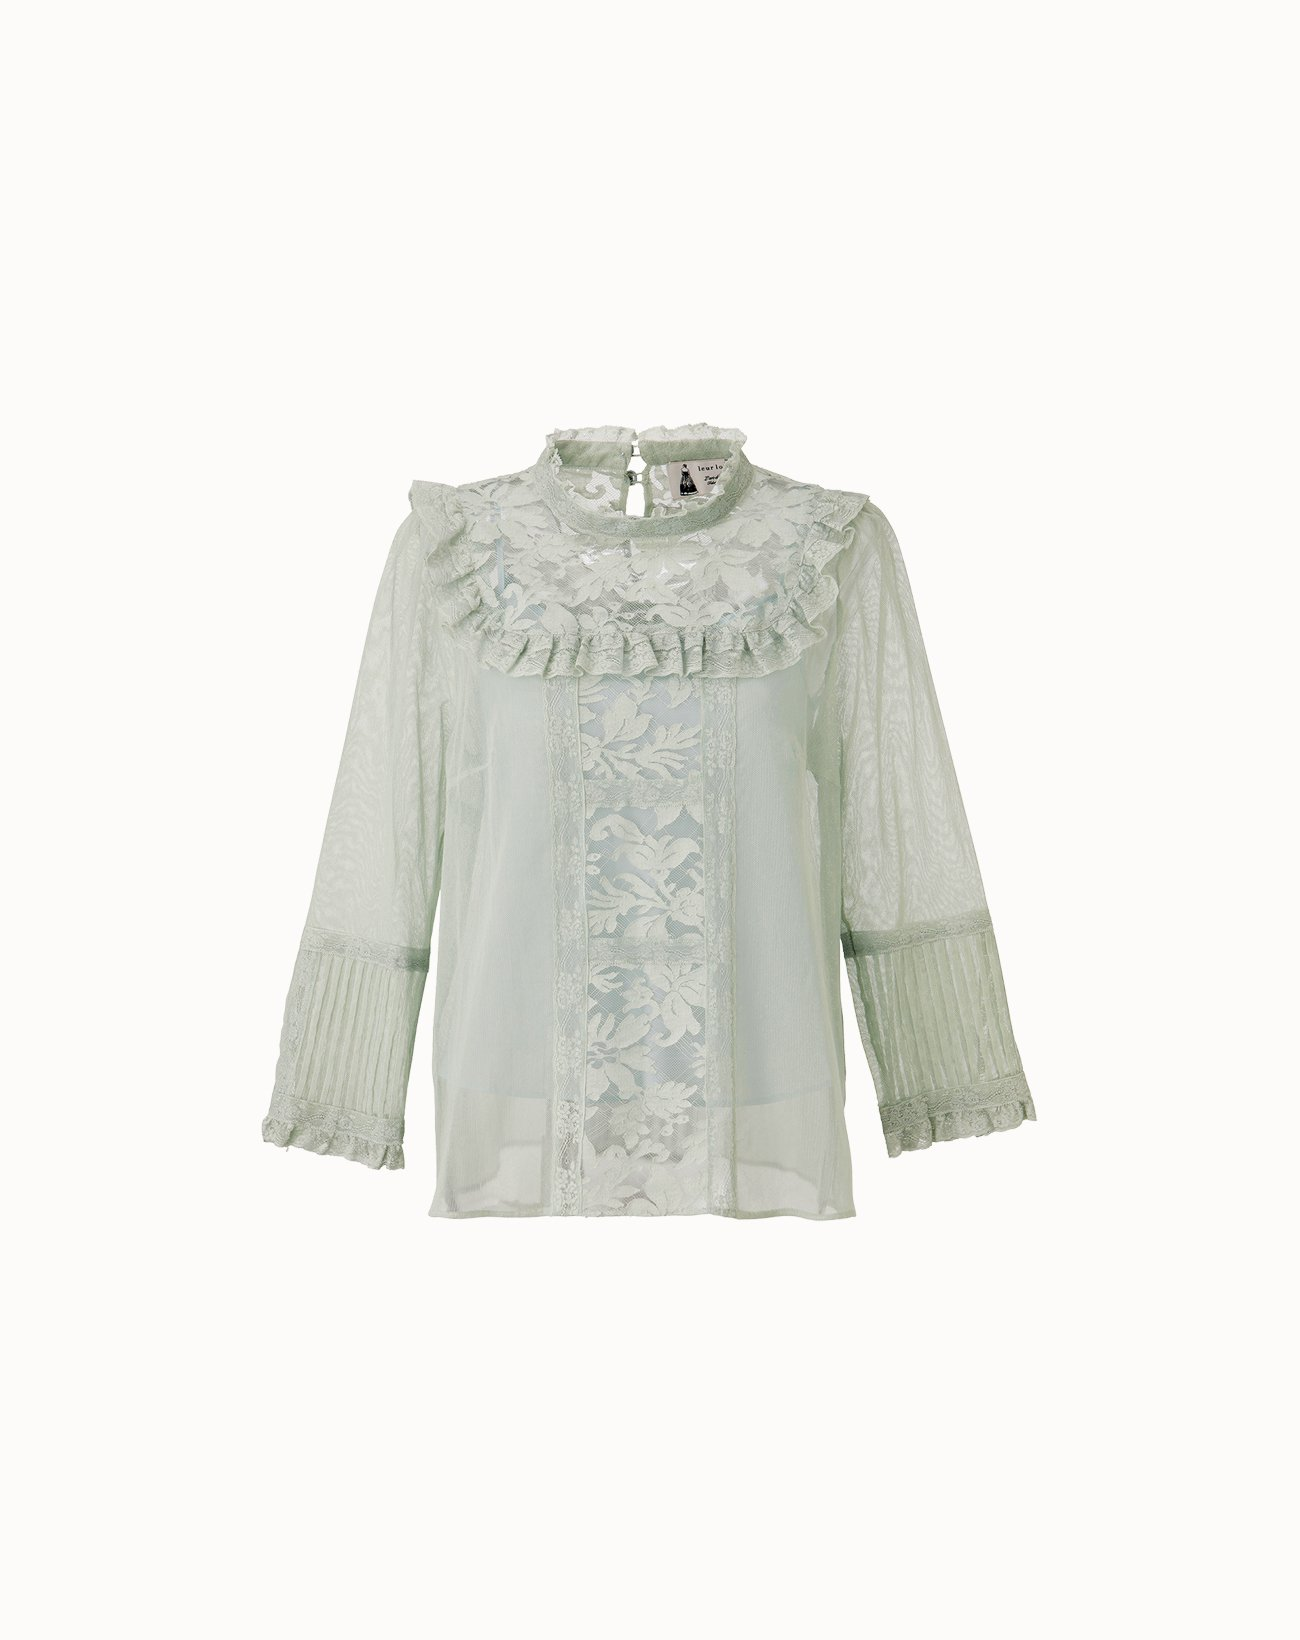 Cotton Tulle Lace Blouse - Green